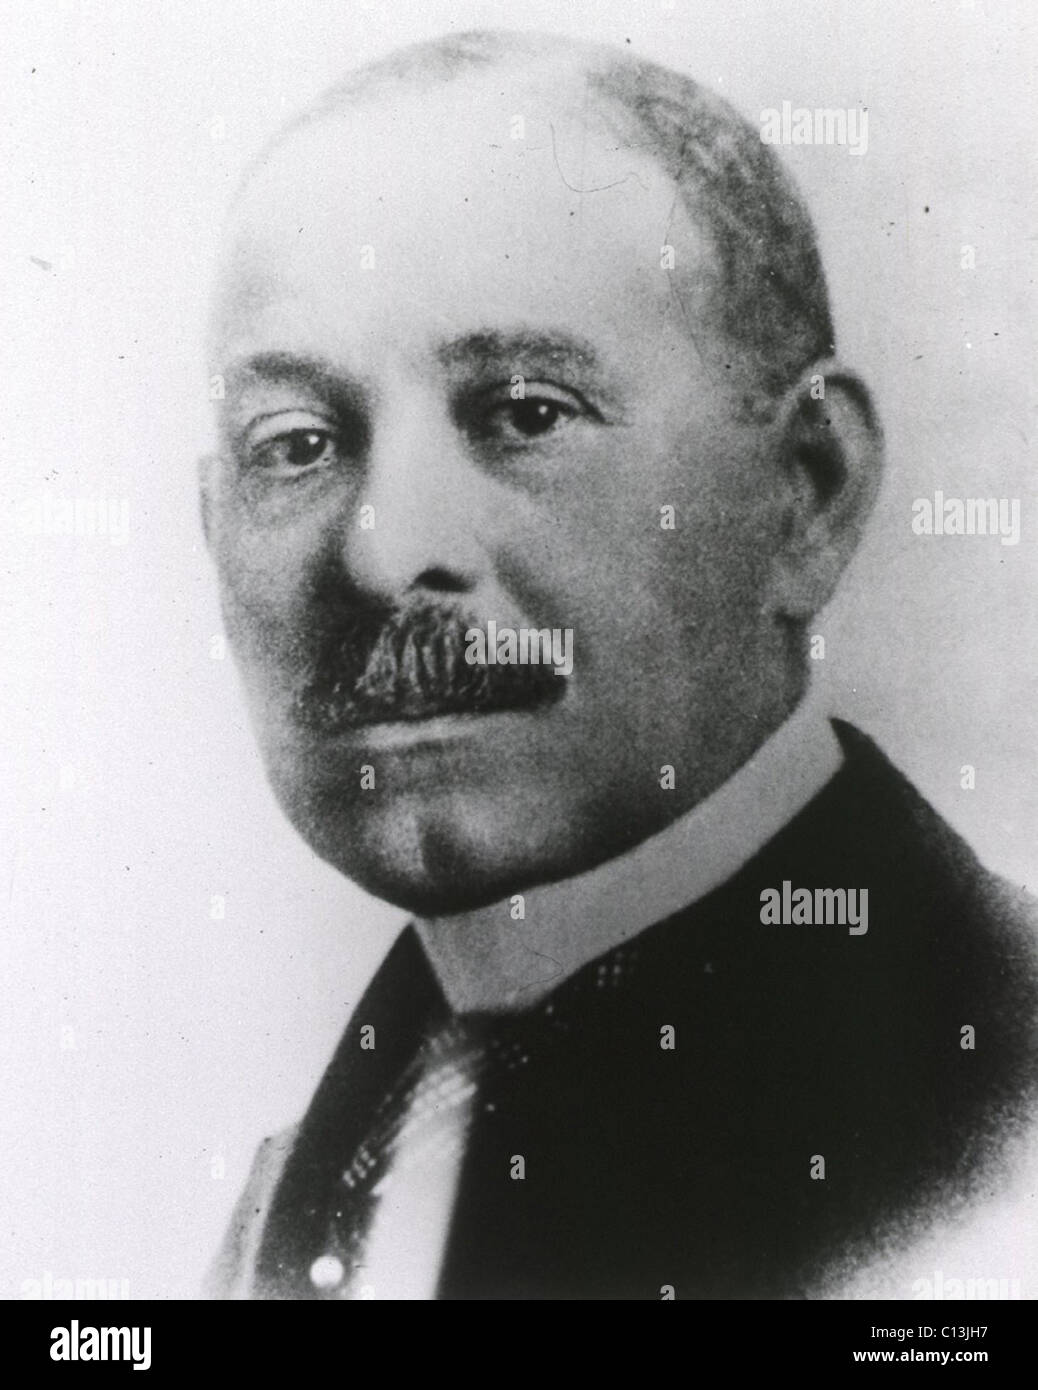 Daniel H. Williams (1856-1931), a prominent African American surgeon, was an early adopter of Lister's antiseptic Stock Photo